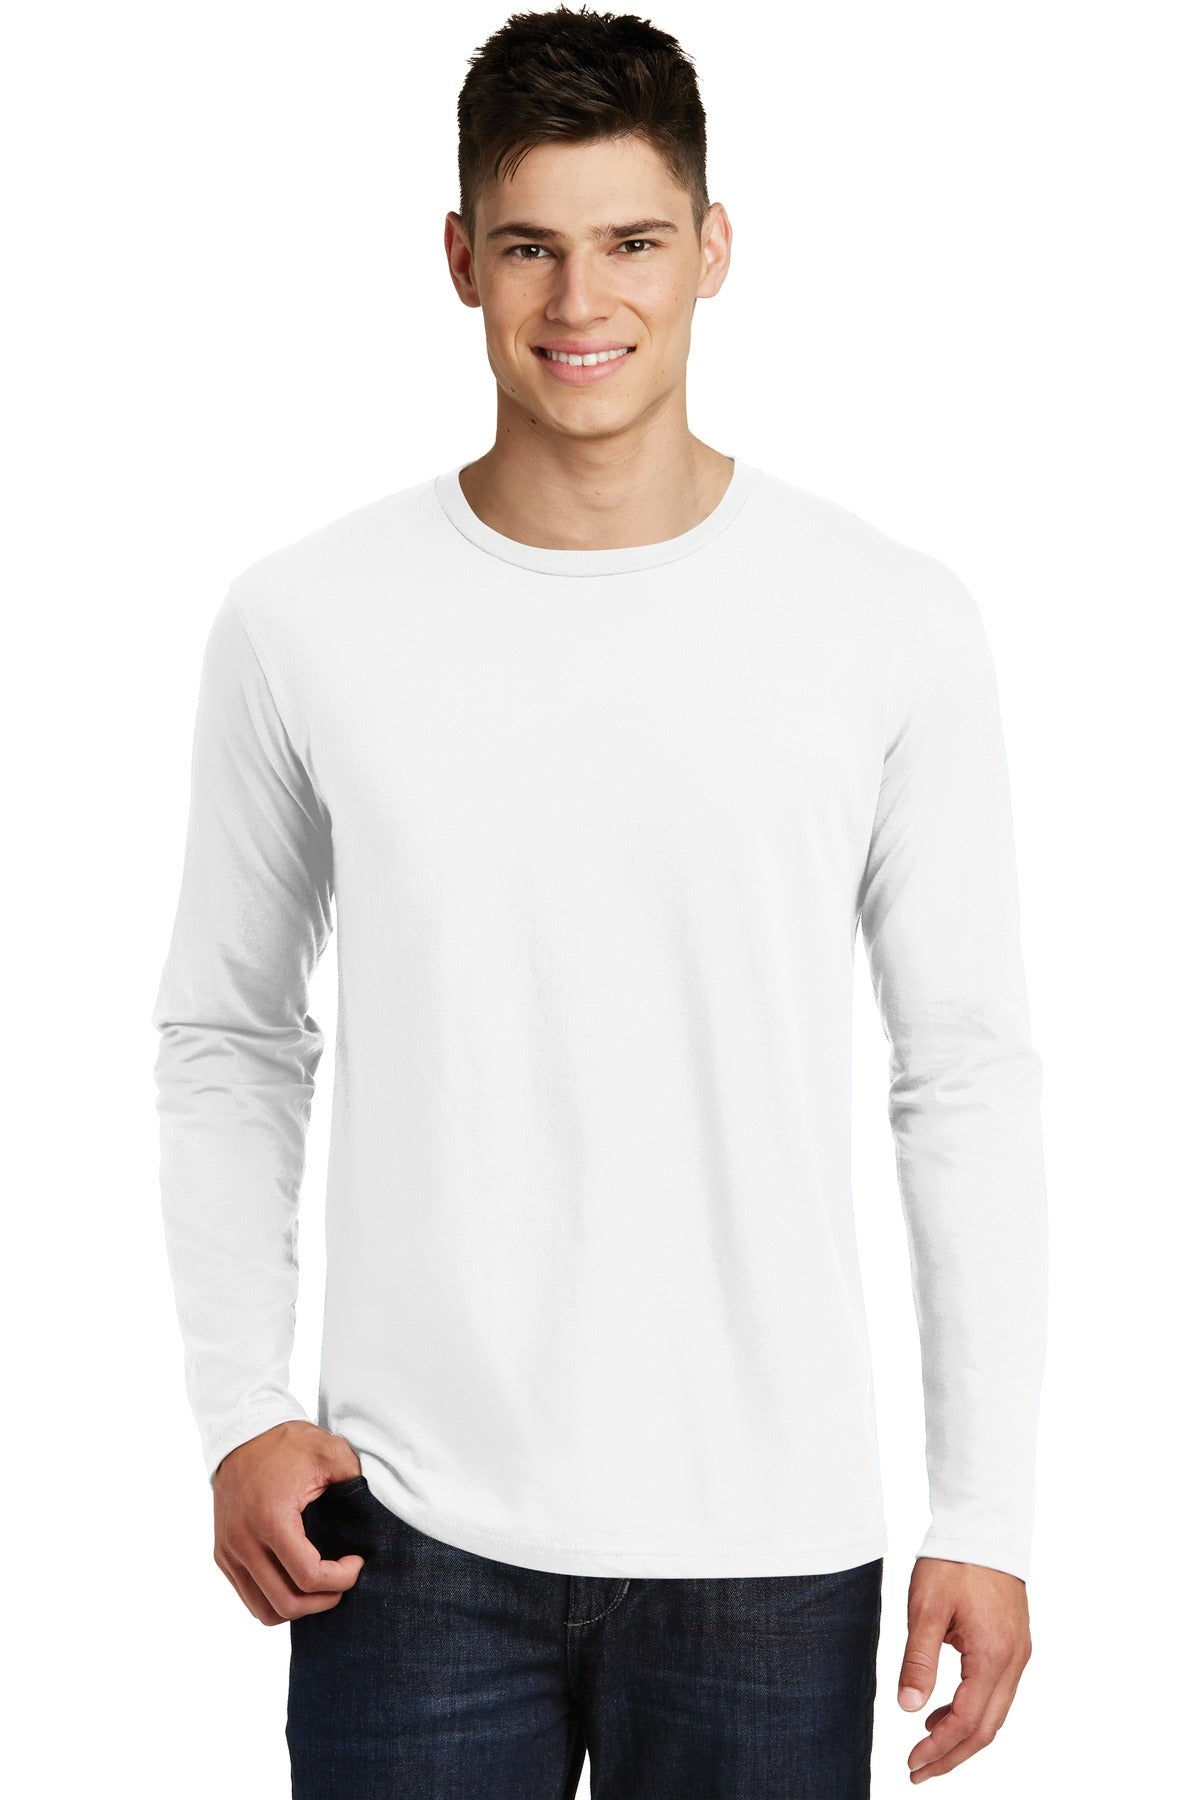 District® Very Important Tee® Long Sleeve. DT6200 - Aspire Zone